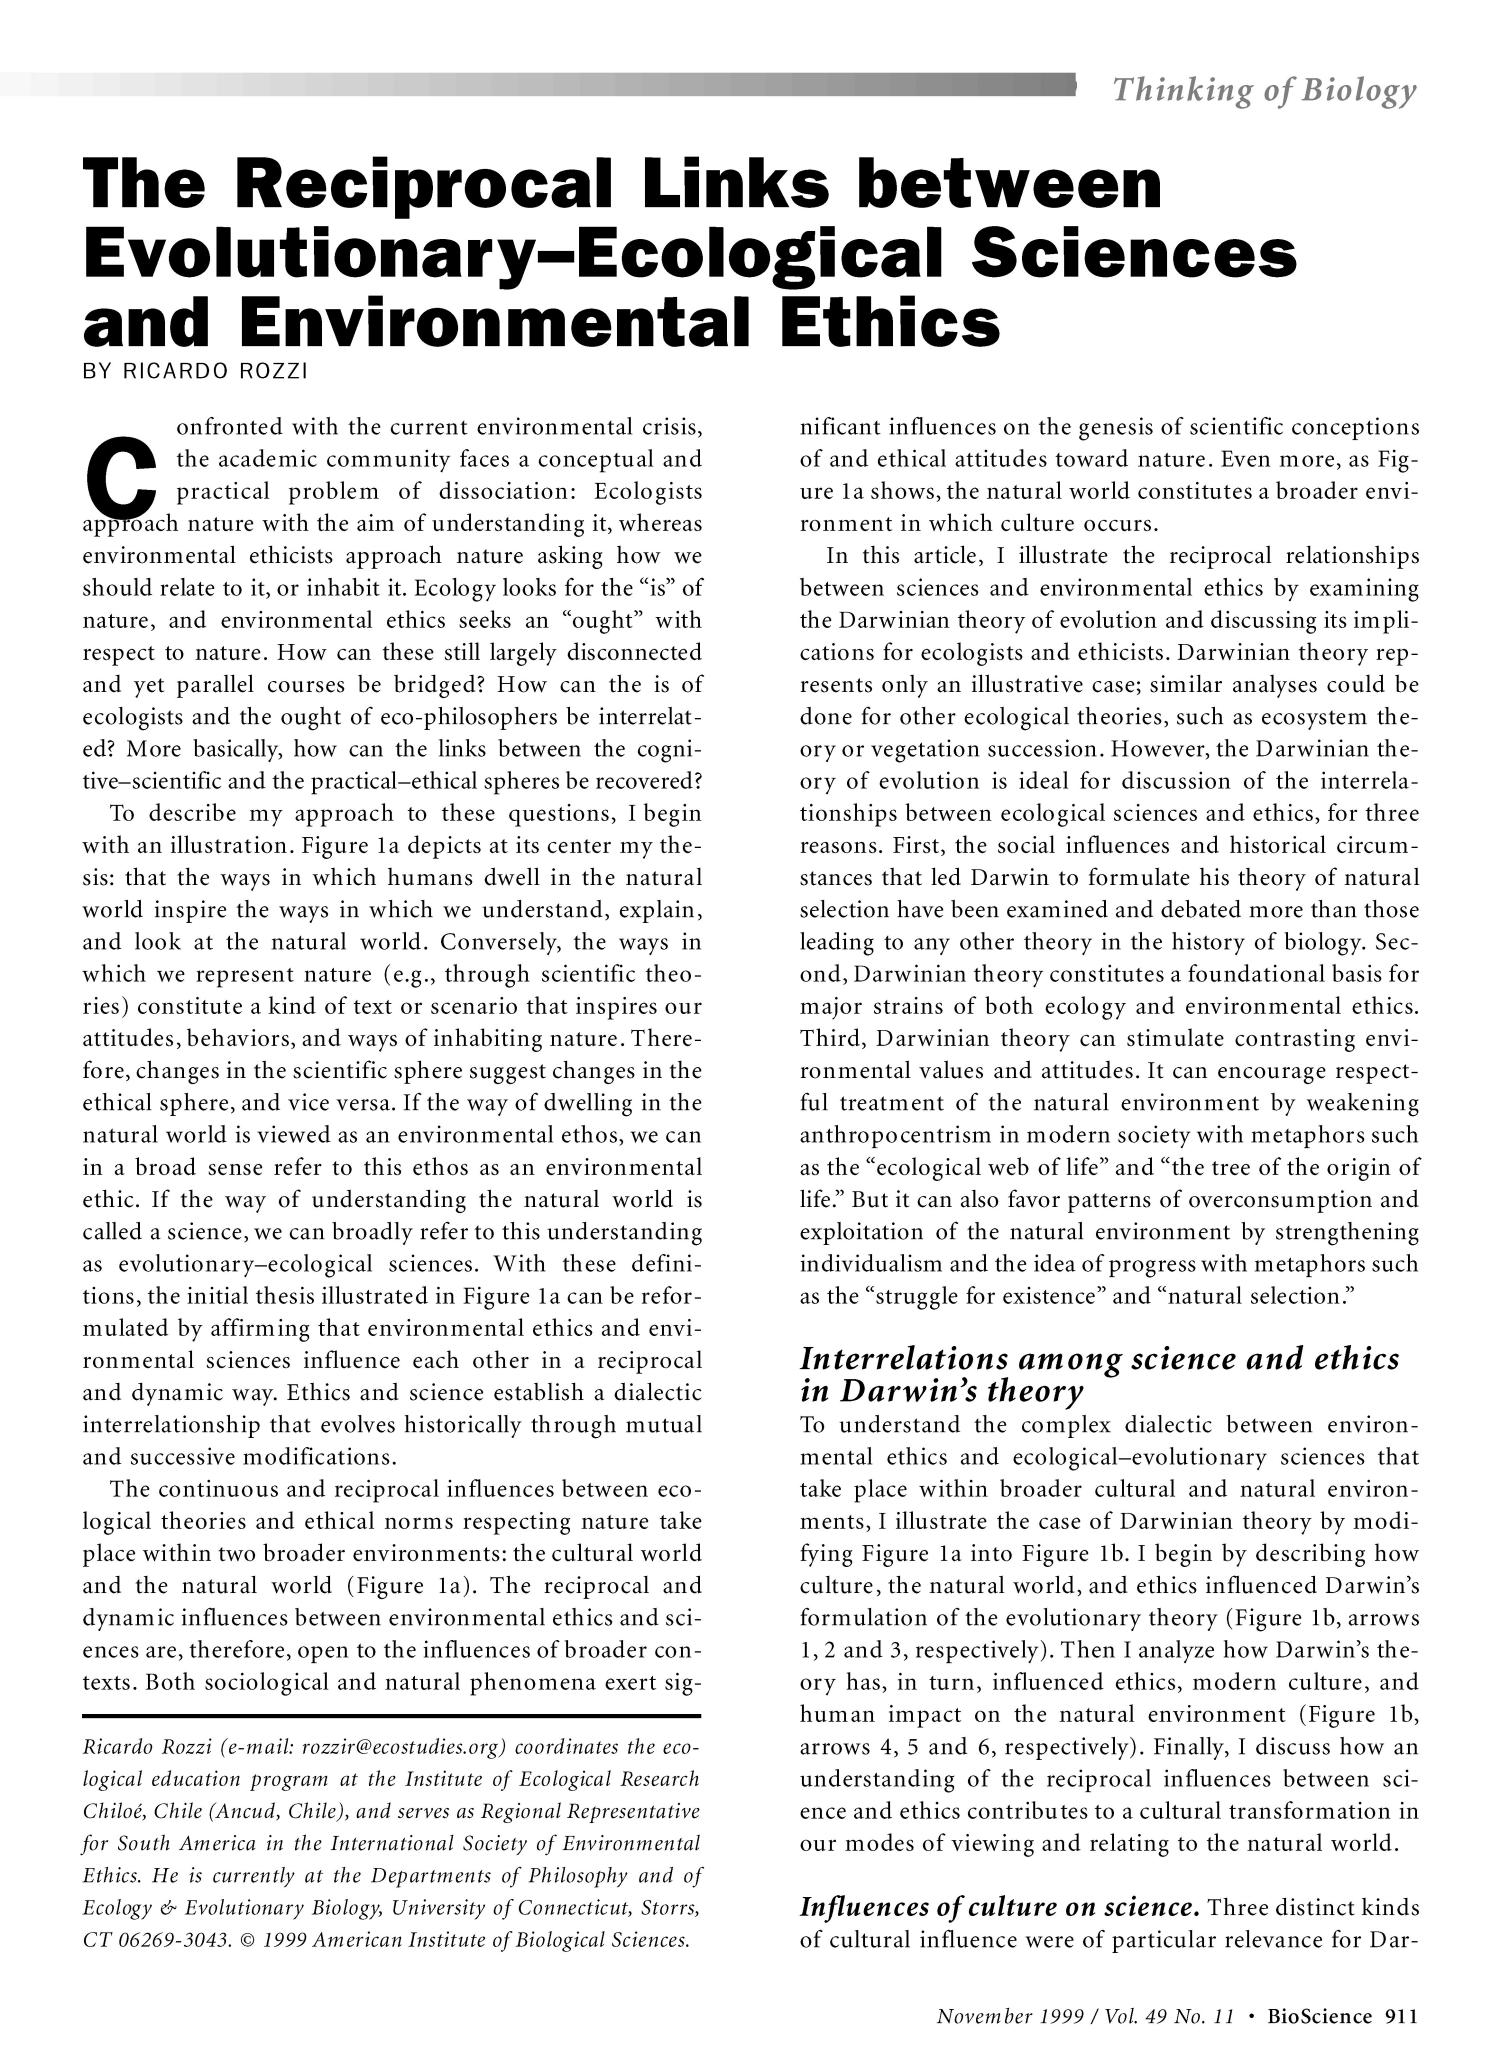 The Reciprocal Links between Evolutionary-Ecological Sciences and Environmental Ethics                                                                                                      911